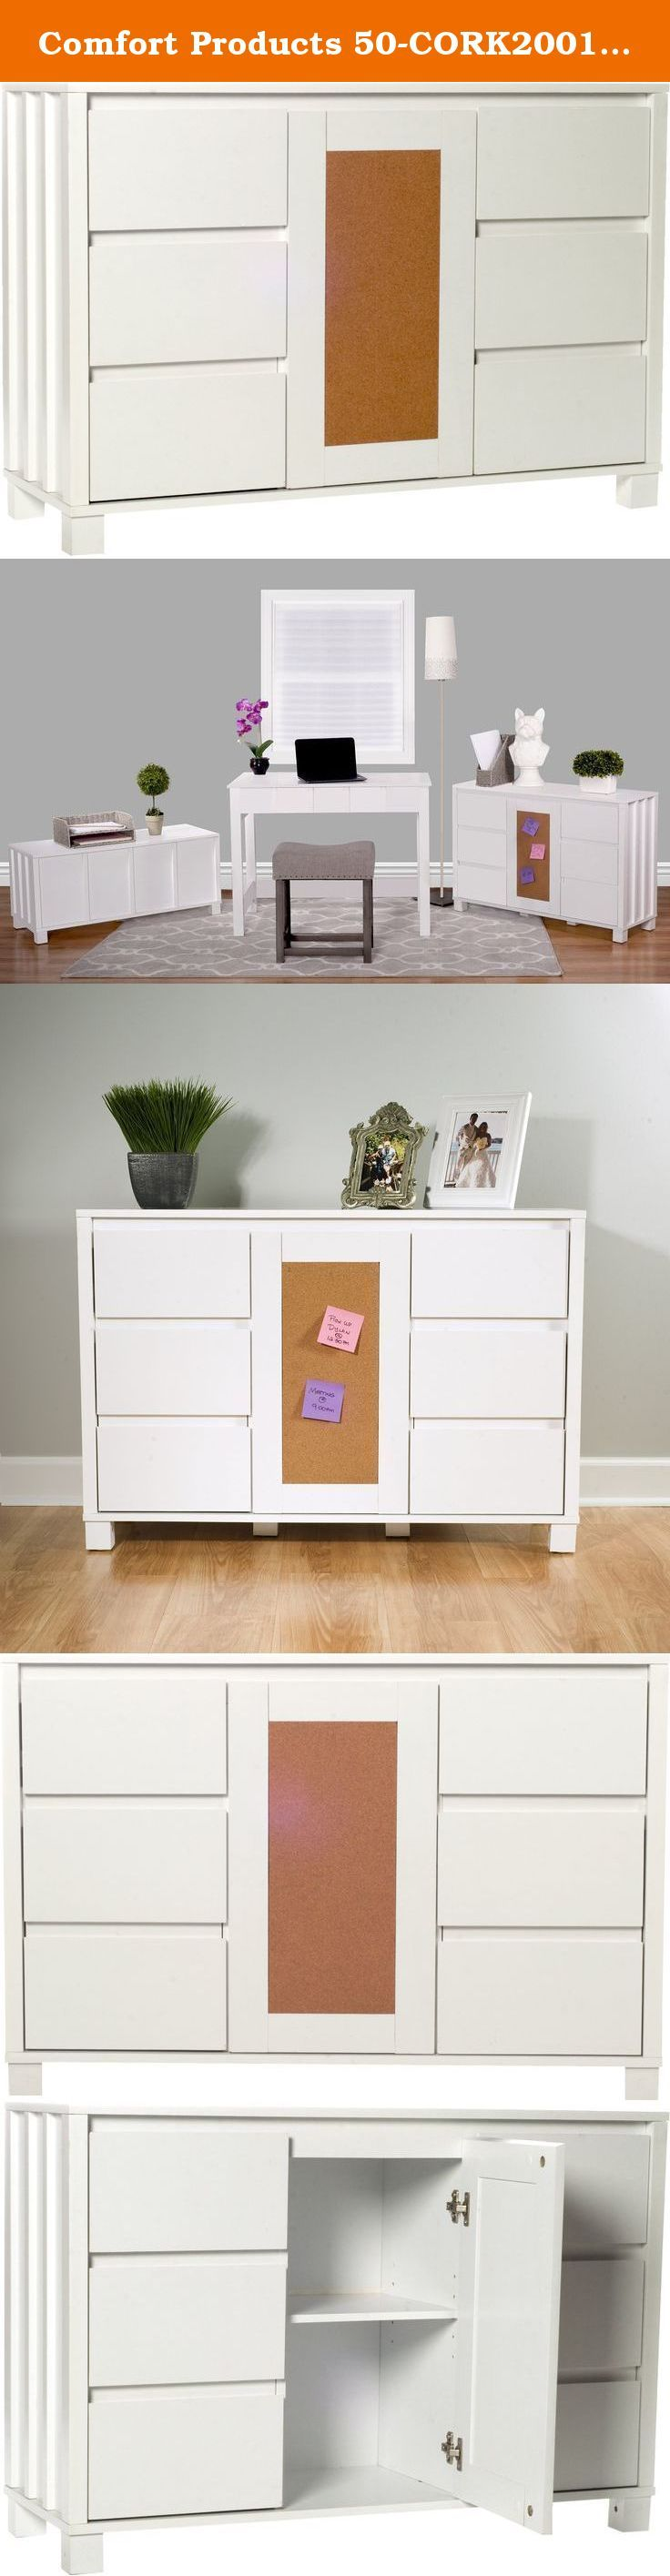 """Comfort Products 50-CORK2001 Cork Collection Console Shelf, White. The Cork Collection by Comfort Products is designed with simple, clean lines. The durable white laminate surfaces have a soft sheen that look bright and elegant. The surfaces clean up easily with a damp cloth. The cork panel is great for posting pictures, notes and other memories. The console cabinet measures 39.4"""" x 13.8"""" x 27.2"""". Keep your office neat and clutter free with two drawers that measure 10"""" x 11"""" x 3.9"""" and…"""